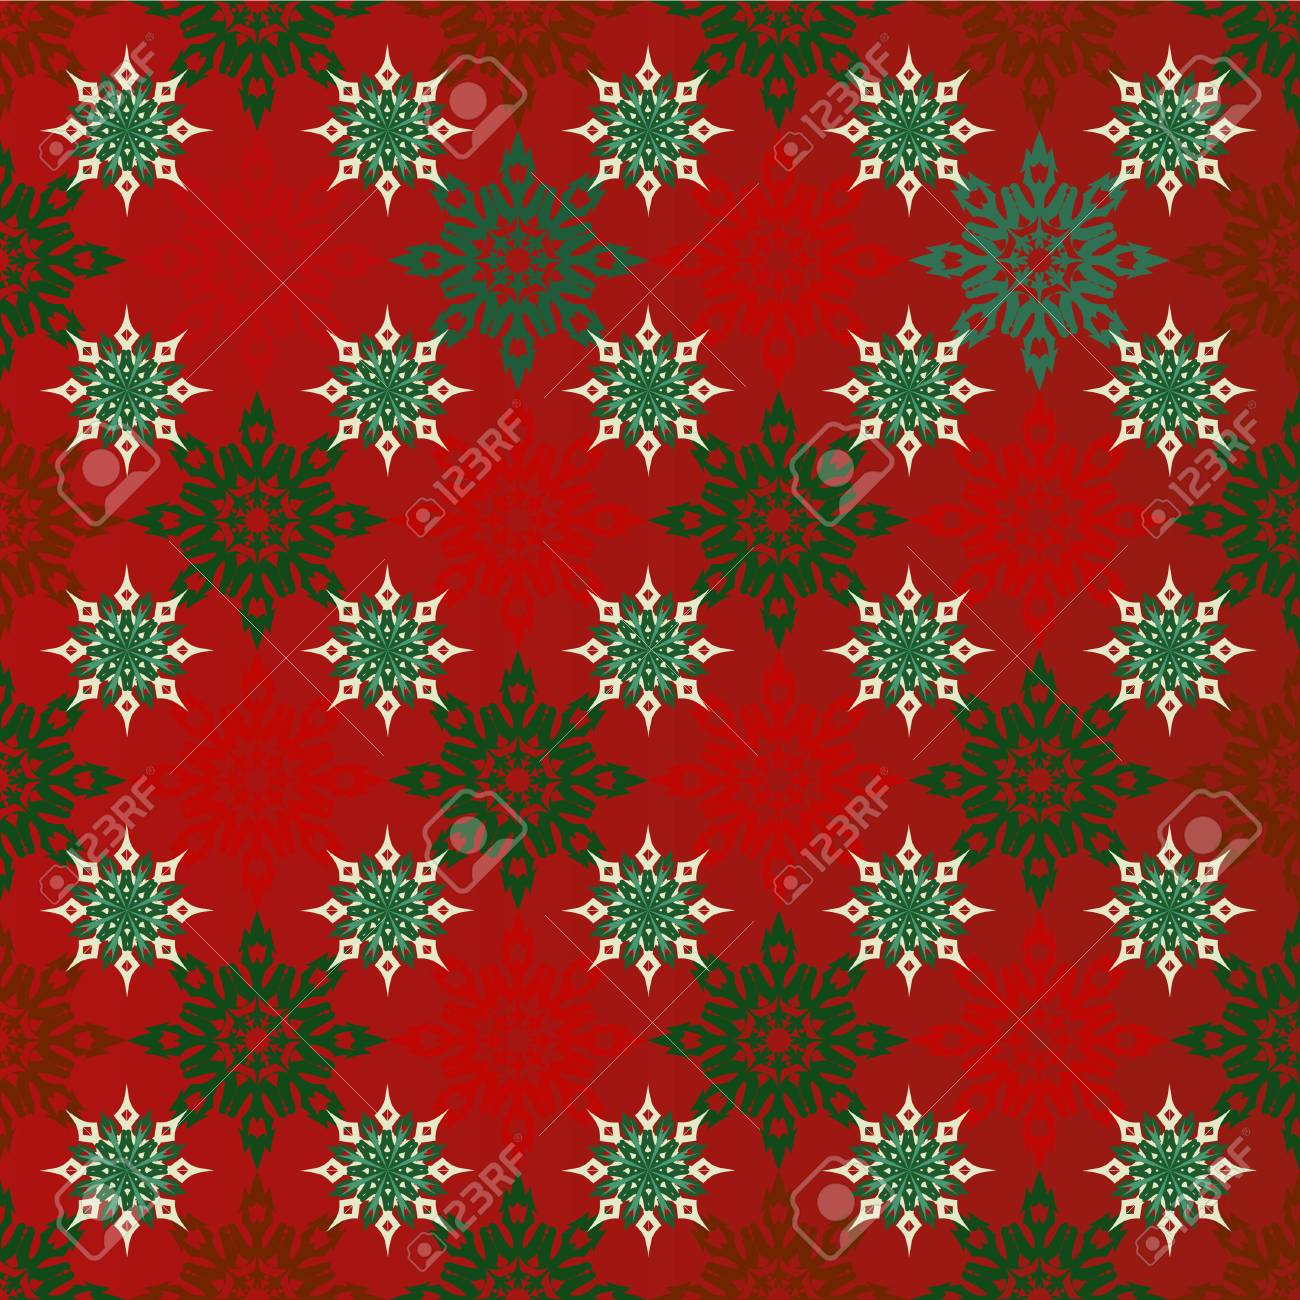 Christmas Seamless Red Background With Red And Green Snowflakes